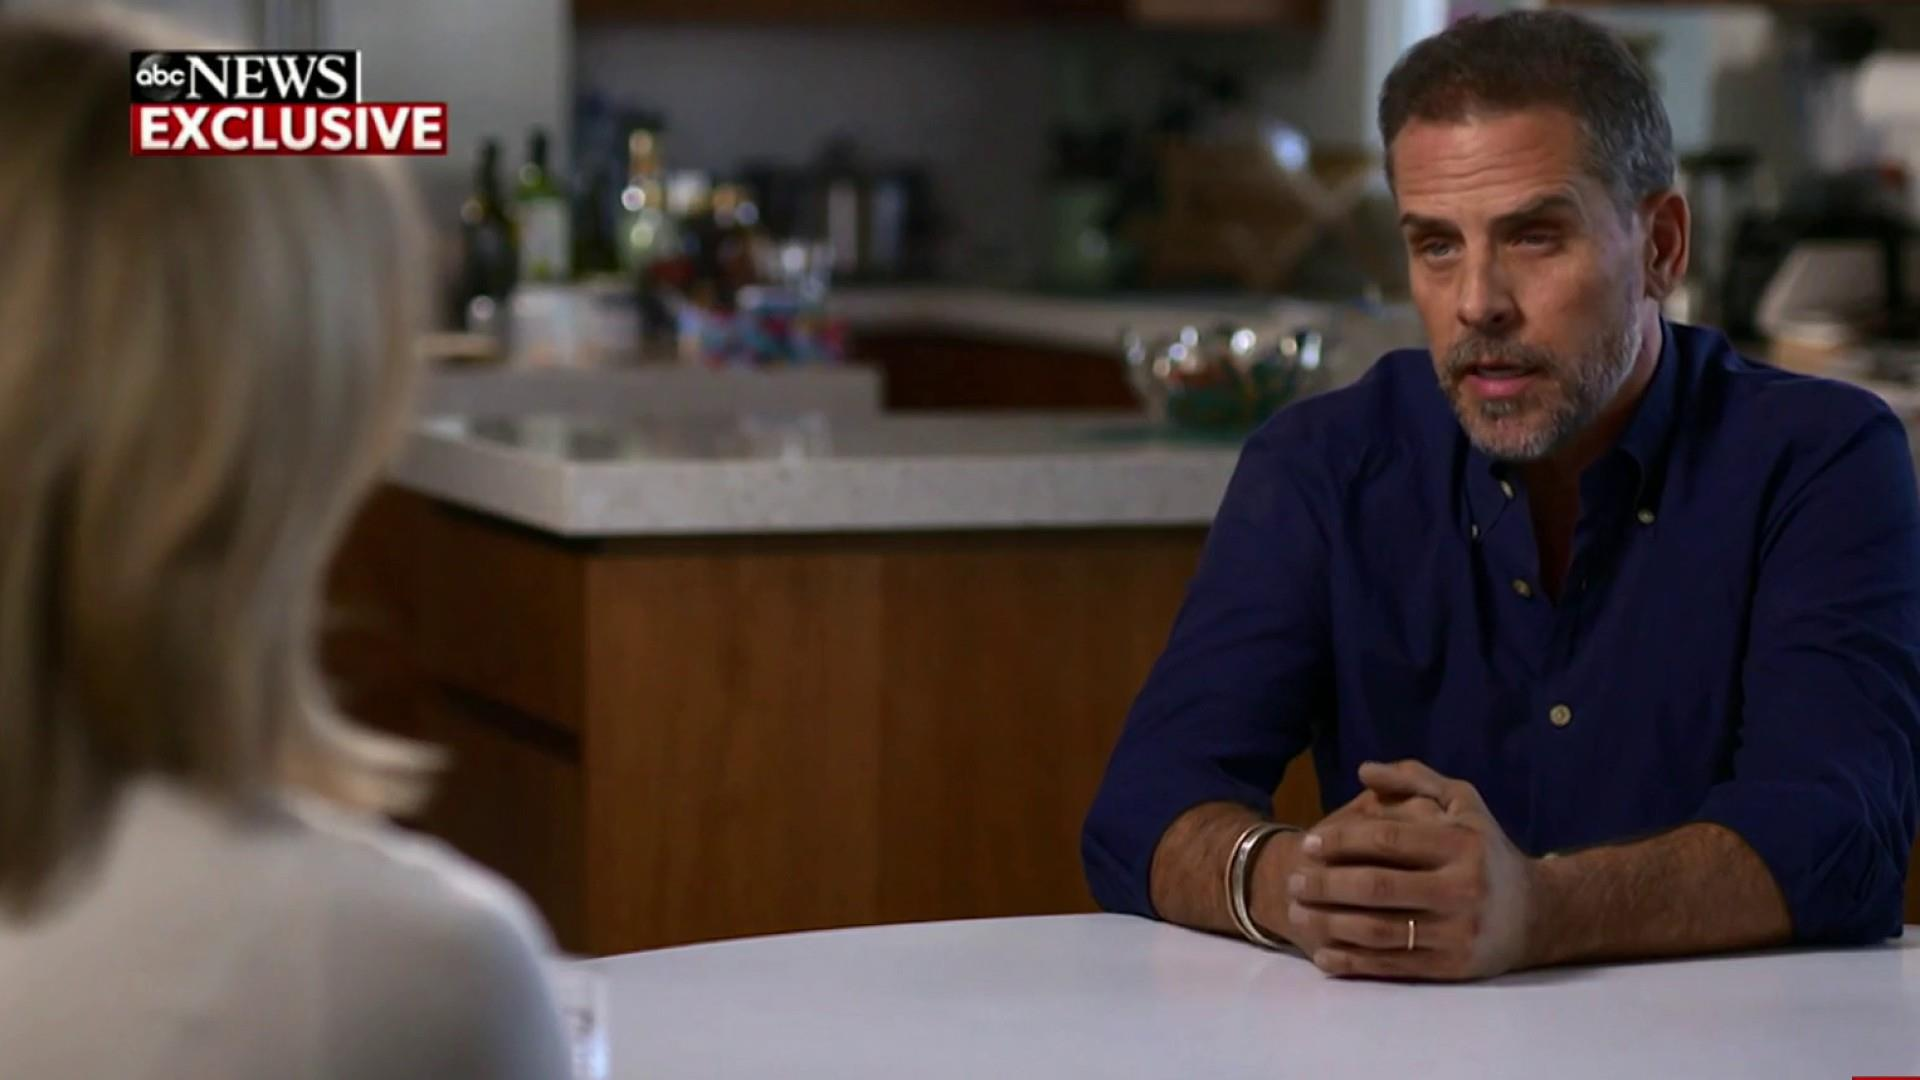 Hunter Biden defends foreign business dealings, but admits 'poor judgment'